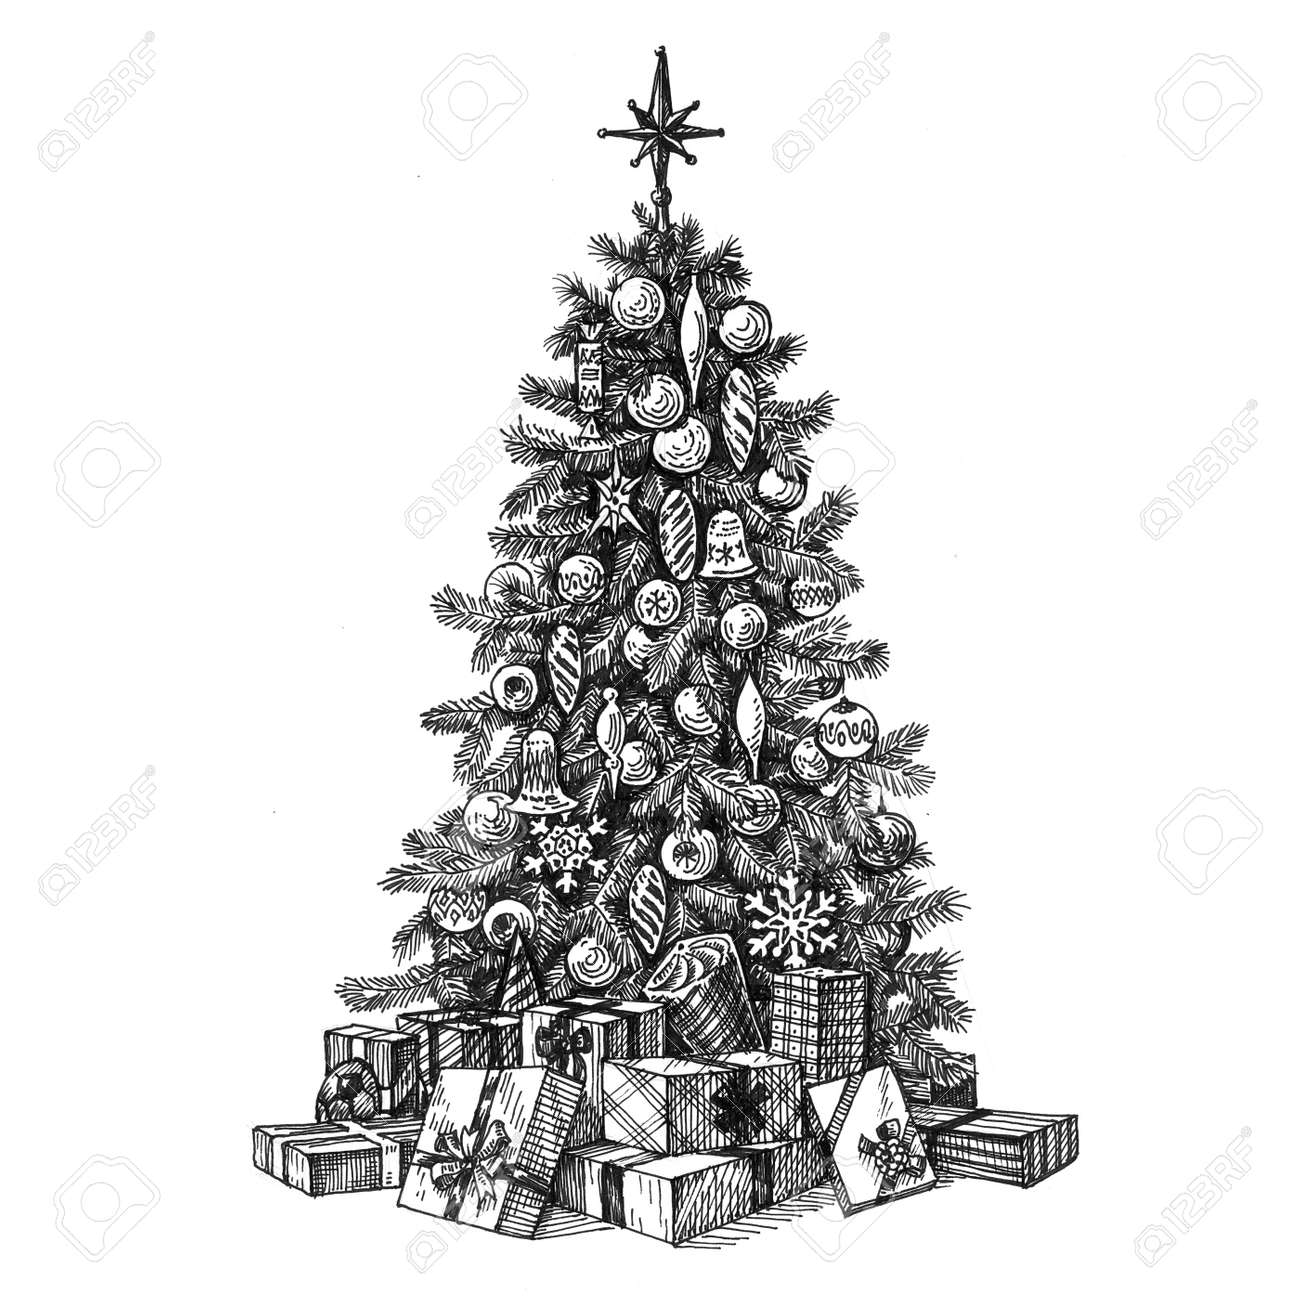 Christmas Tree And Gifts On A White Background Sketch Stock Photo